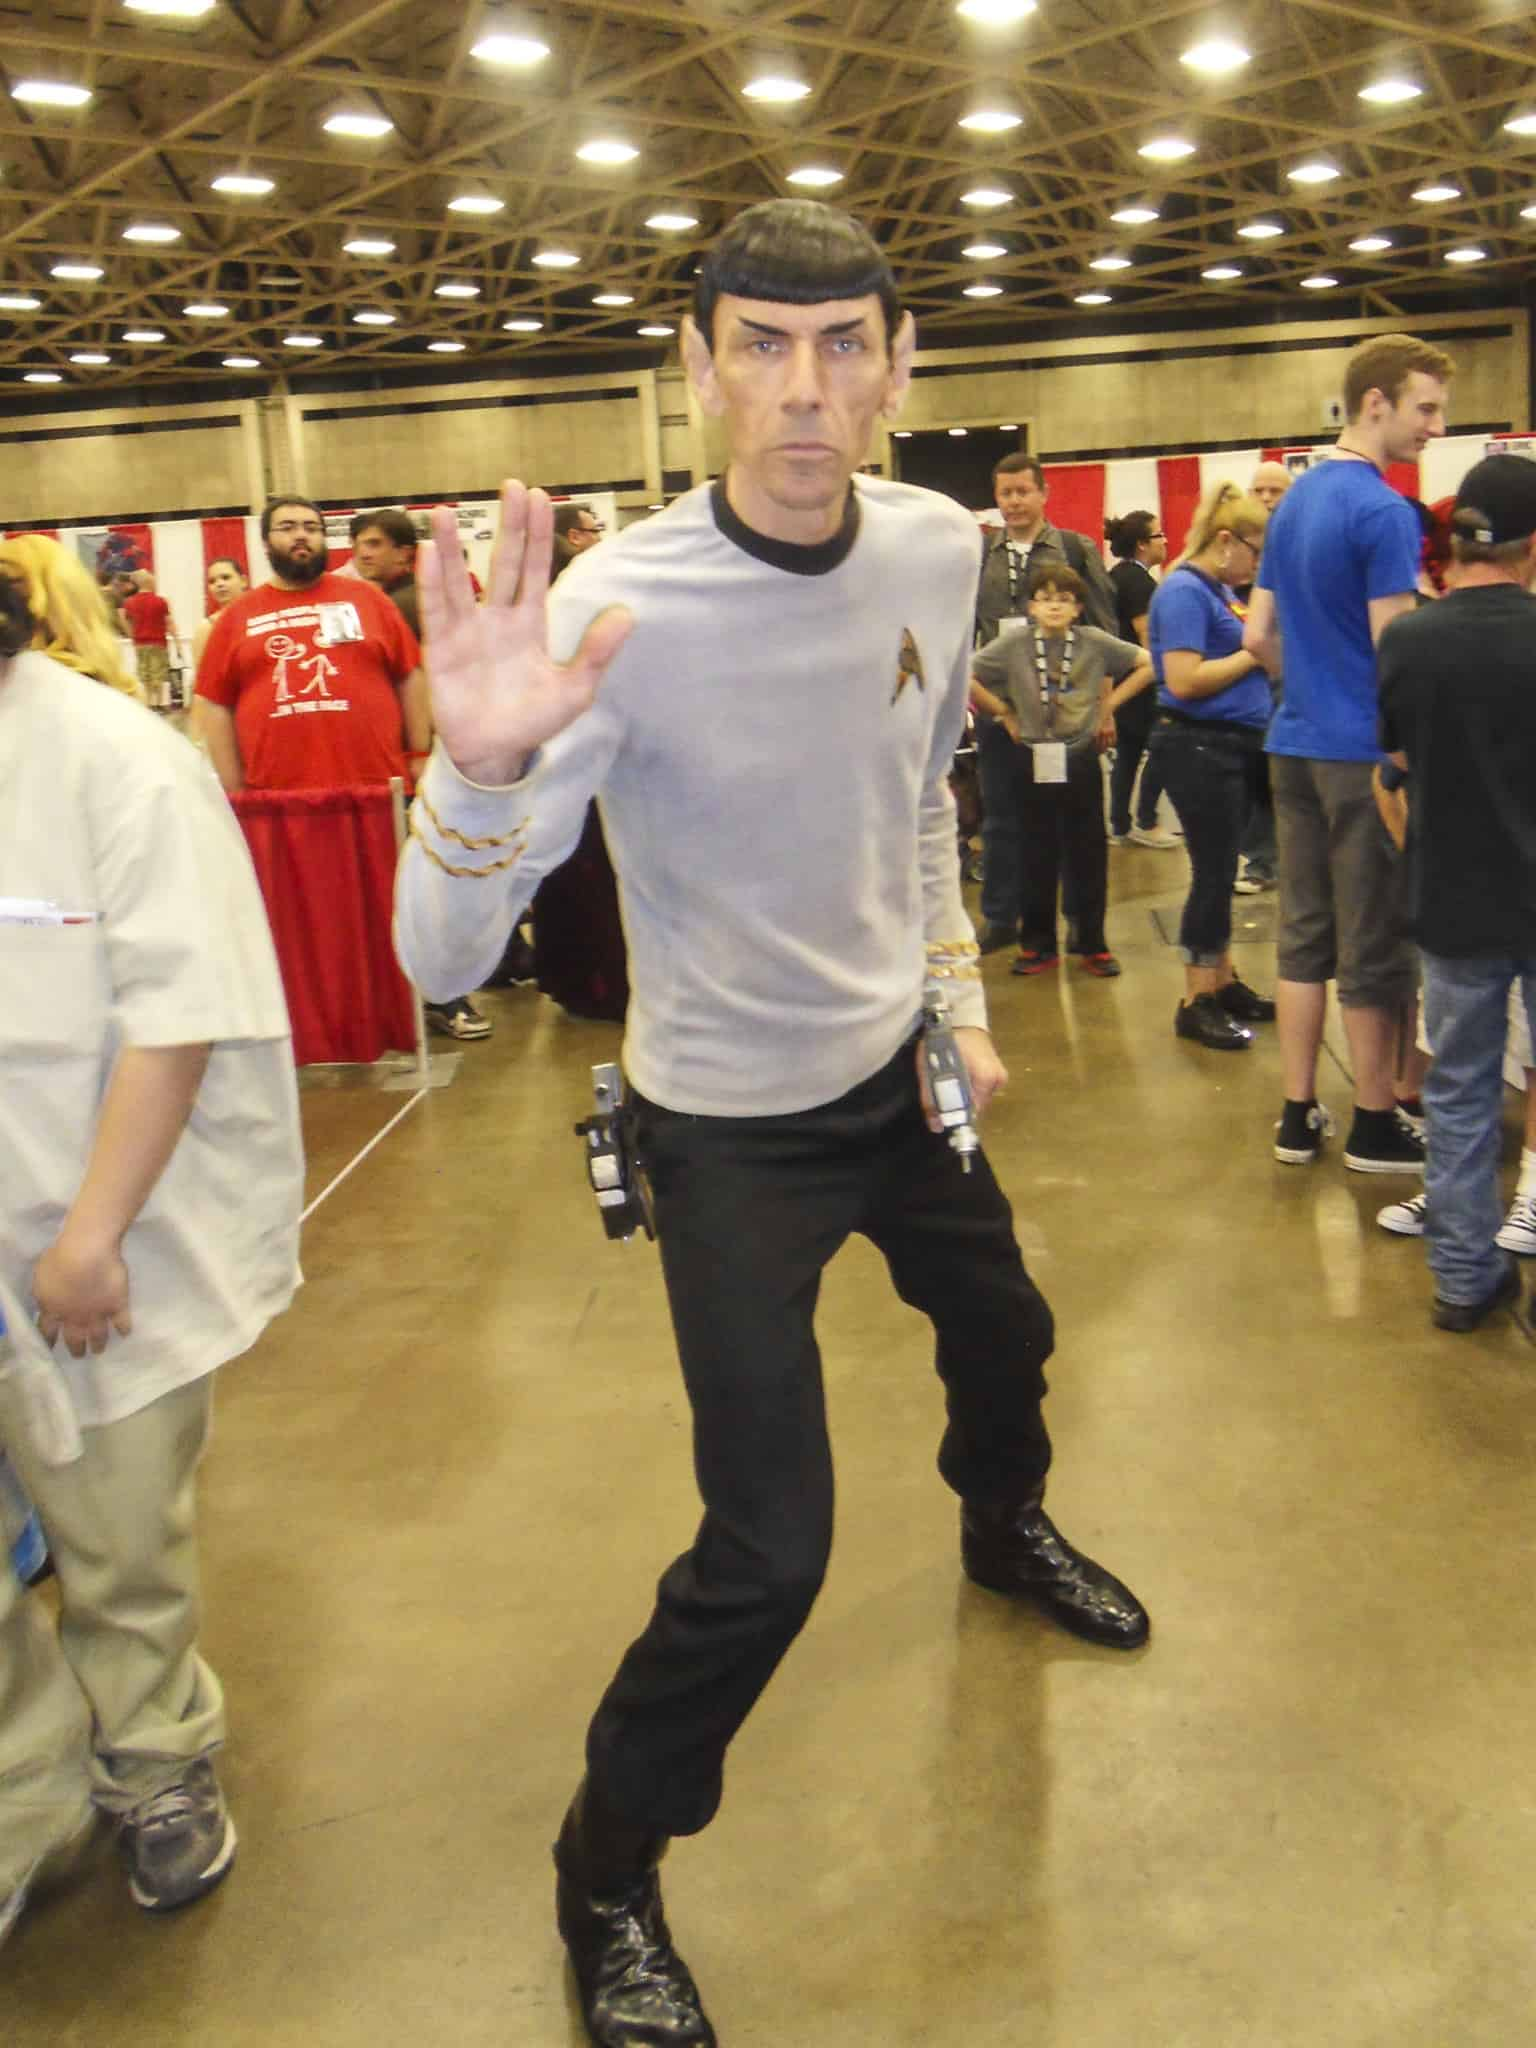 Halloween in May: Cosplayers Pose for Pics at Fan Expo Dallas ...